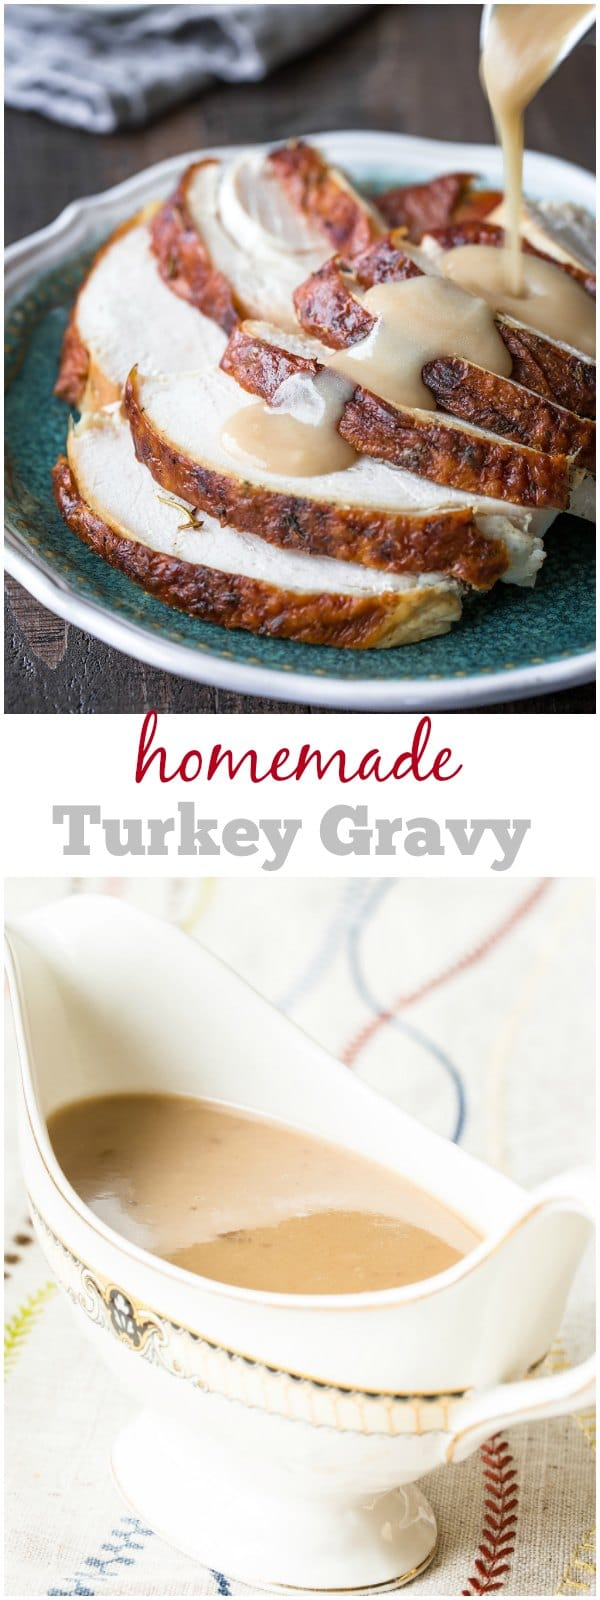 Easy, foolproof turkey gravy recipes with tips and tricks to success! #turkeygravy #ThanksgivingMenu #ThanksgivingRecipes #gravy #homemadegravy